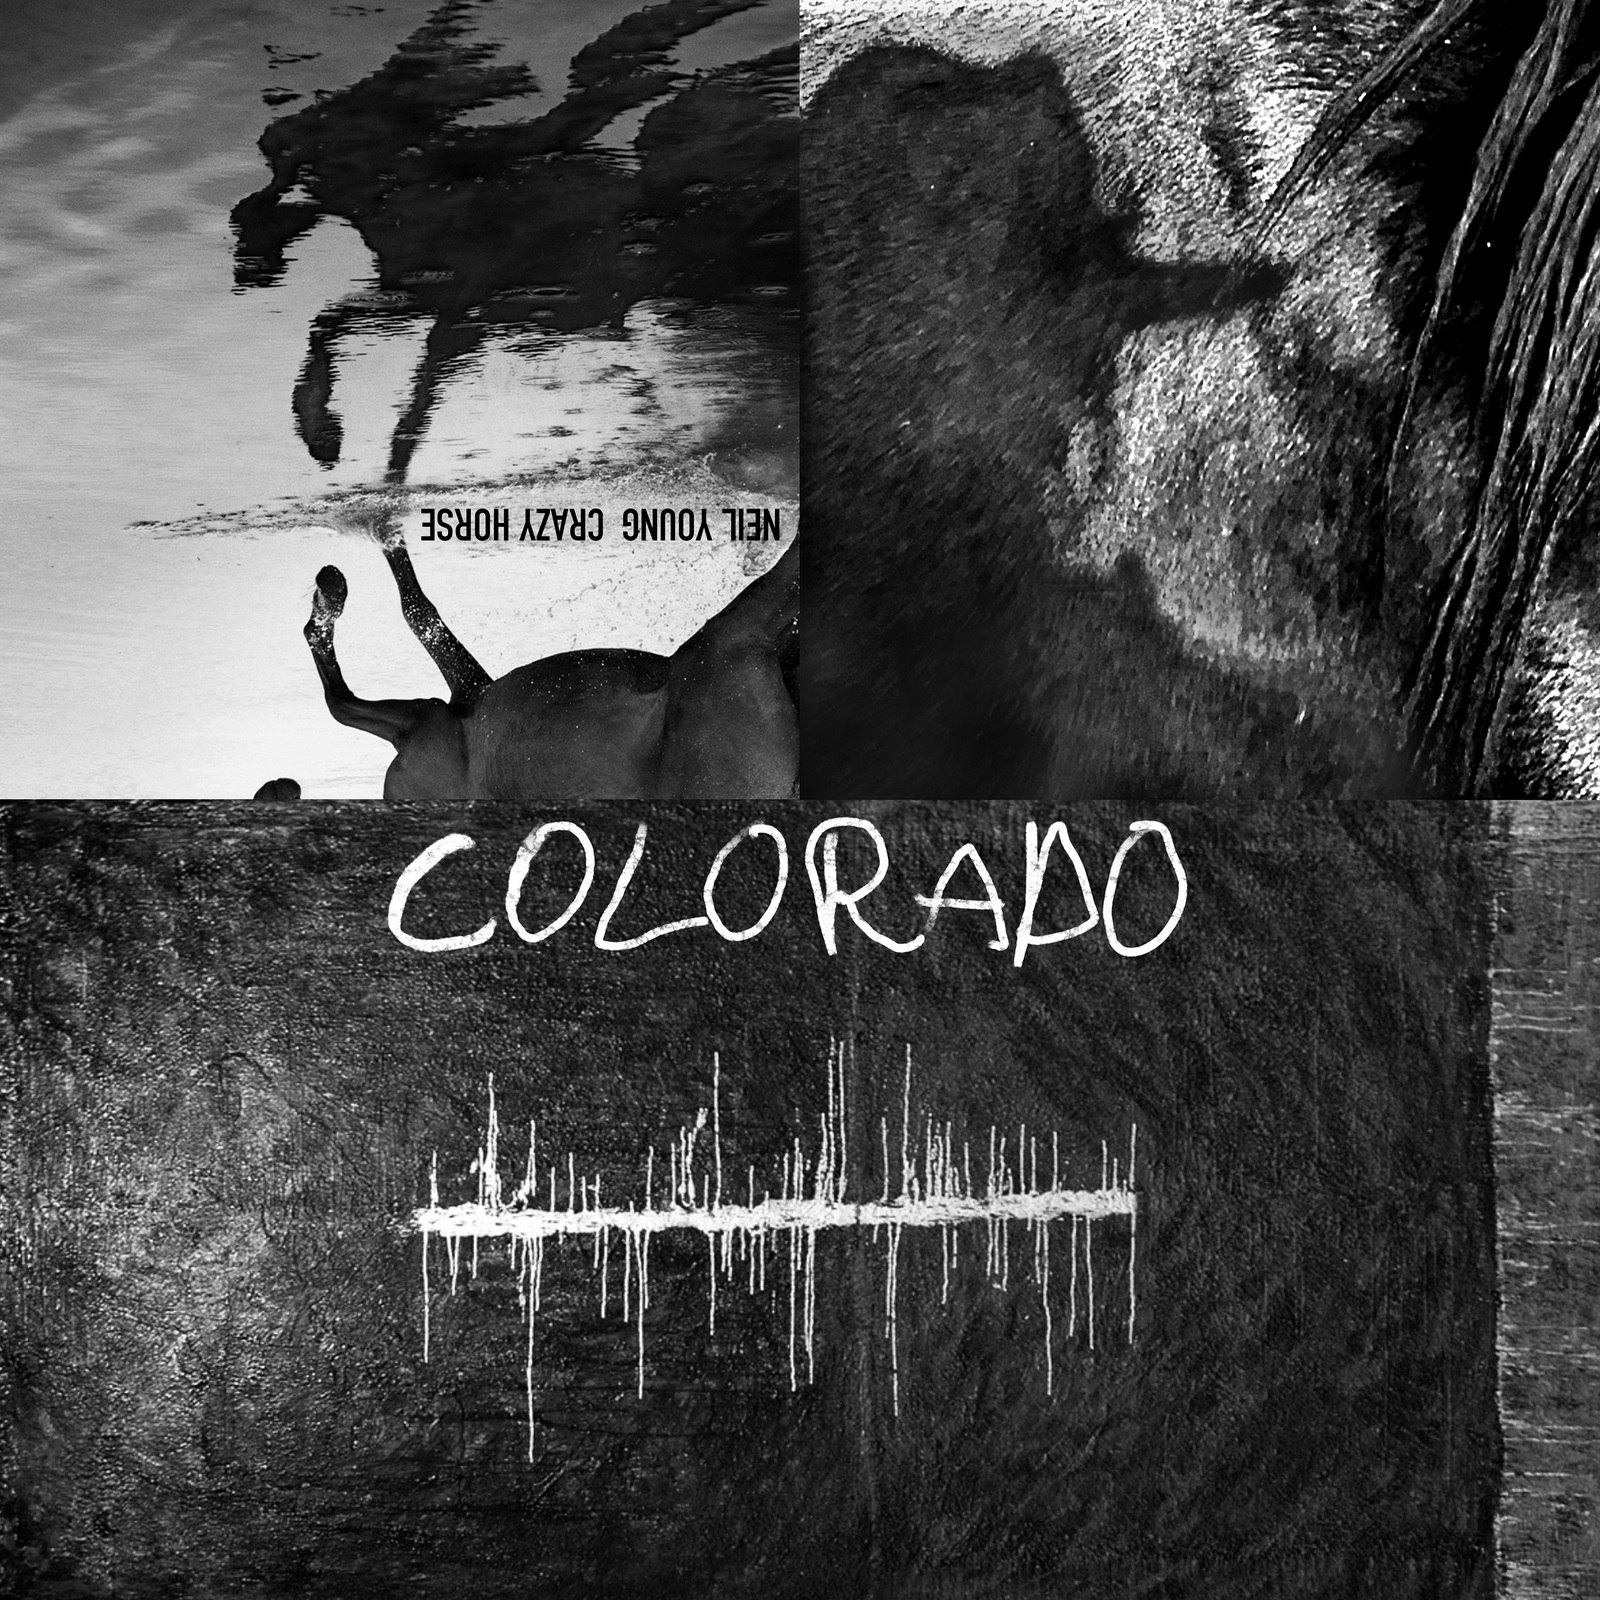 Colorado by Neil Young with Crazy Horse image